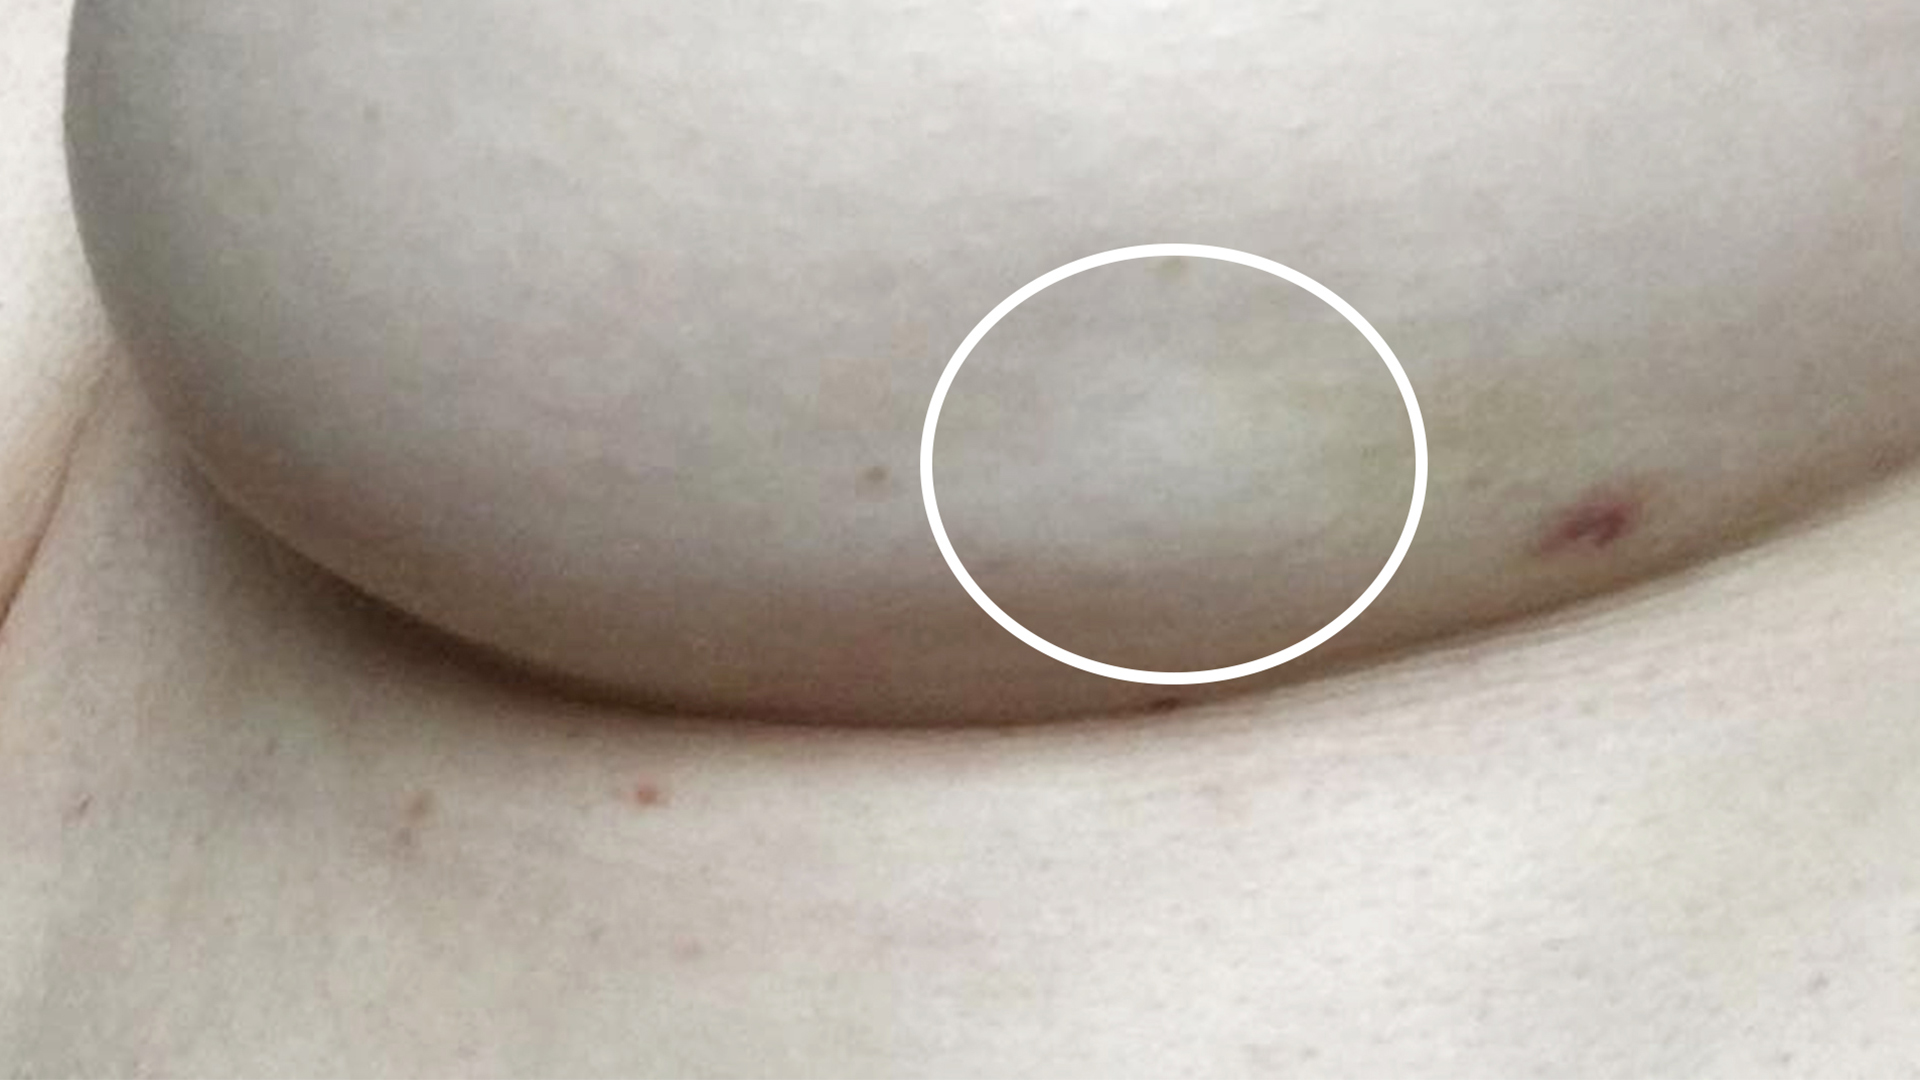 'Blink and you'd miss it': Woman shares photo of breast cancer symptom